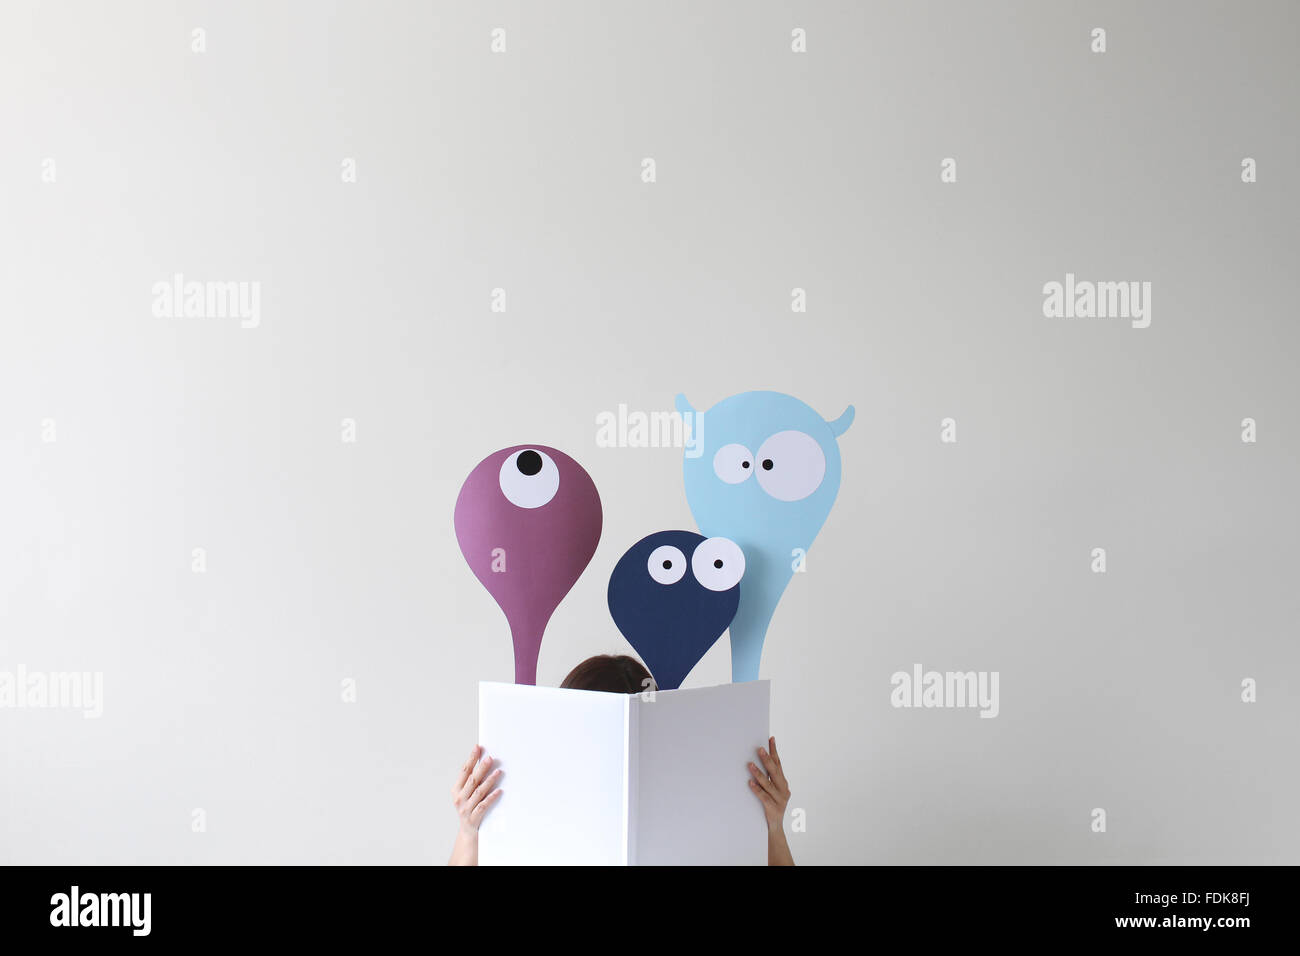 Woman reading book with friendly monsters popping up - Stock Image